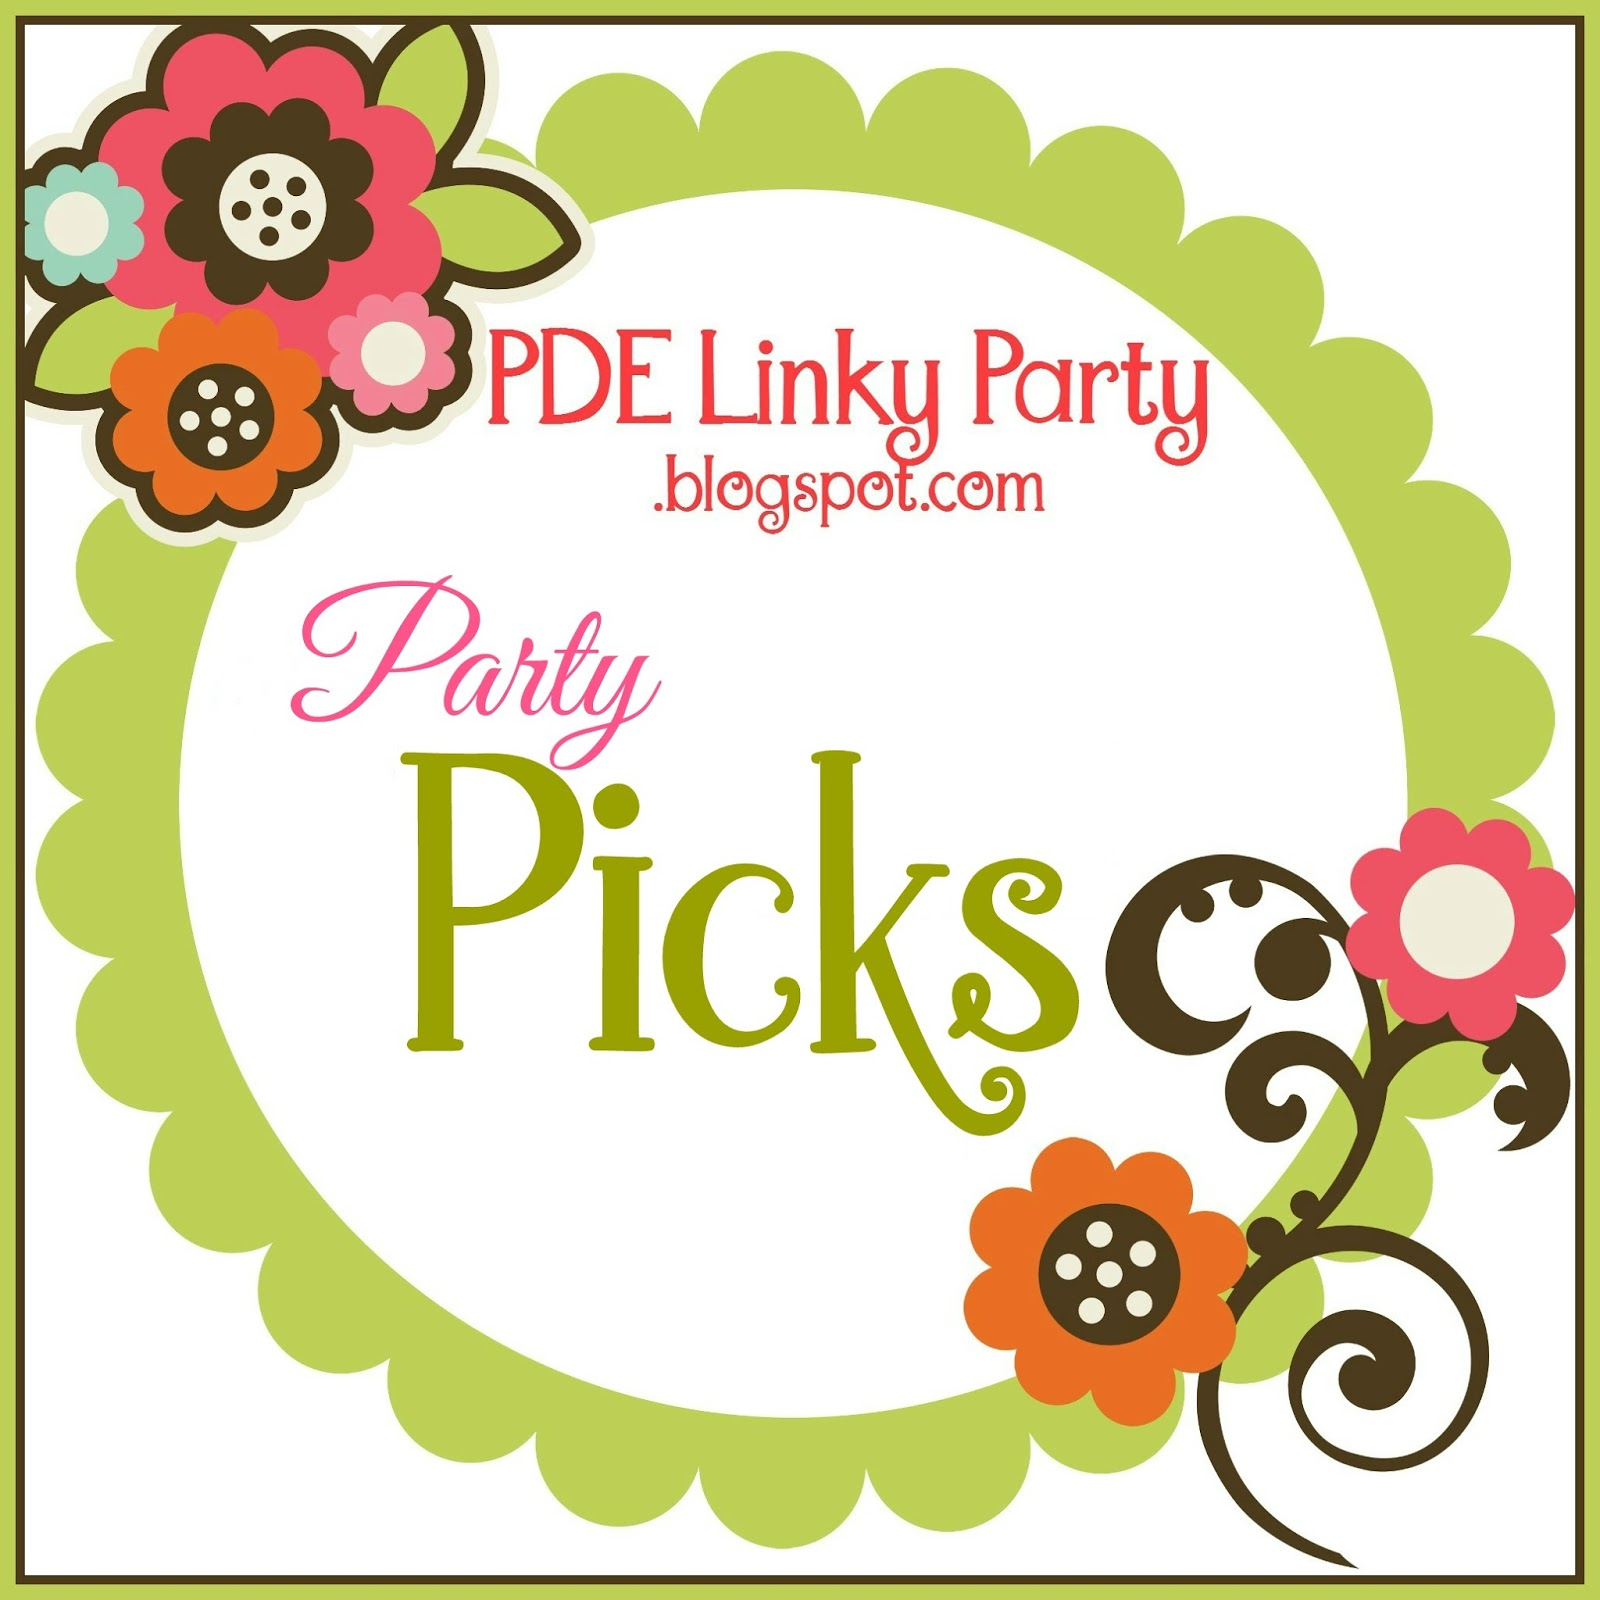 PDE Linky Party Picks